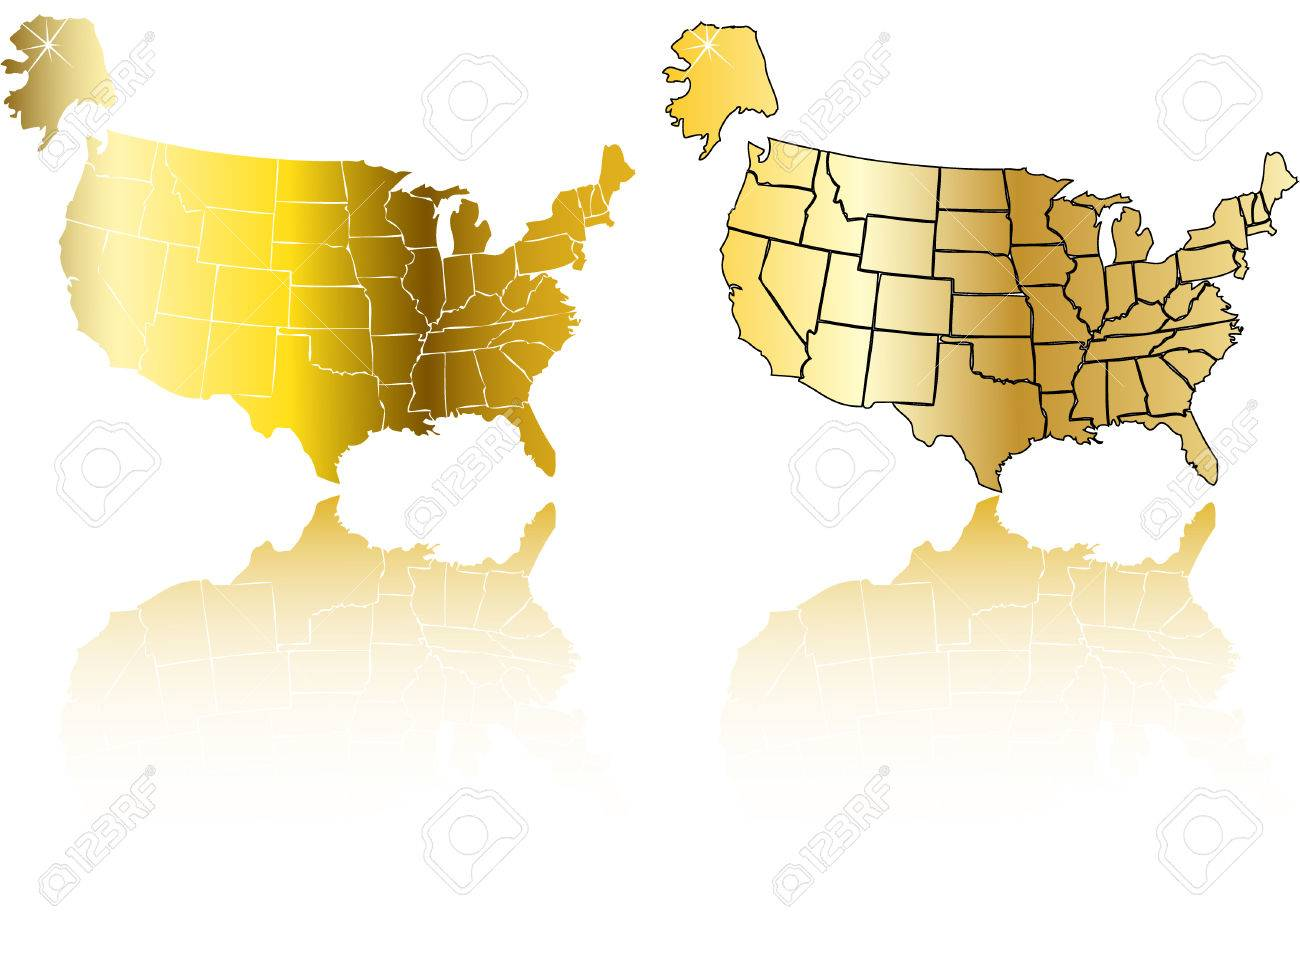 the vector gold usa map set on gold in vermont, gold in california, gold in puerto rico, gold in united states, gold in turkey, gold in pennsylvania, gold in north dakota, in the civil war states map, gold in indiana, copper mining in the united states, us mining map, gold mines in usa, virginia gold mining, gold mining in alaska, gold in arkansas, gold country, gold deposits in usa, landslide united state map, latin america map,